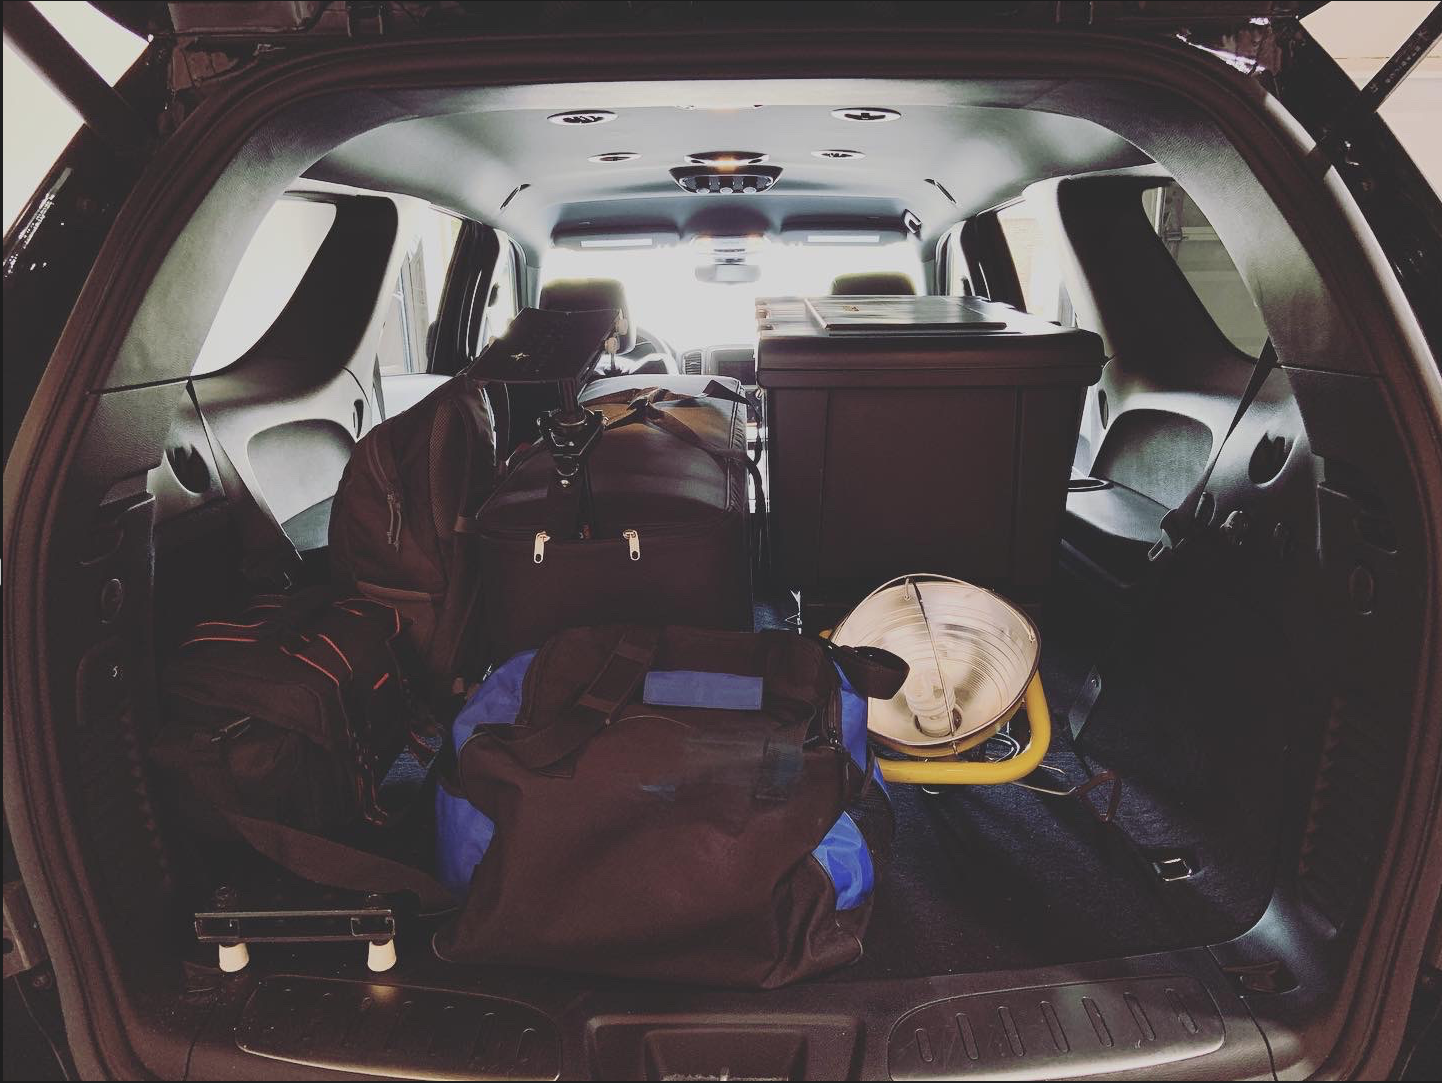 BTS: Vehicle packed with equipment heading out to video shoot